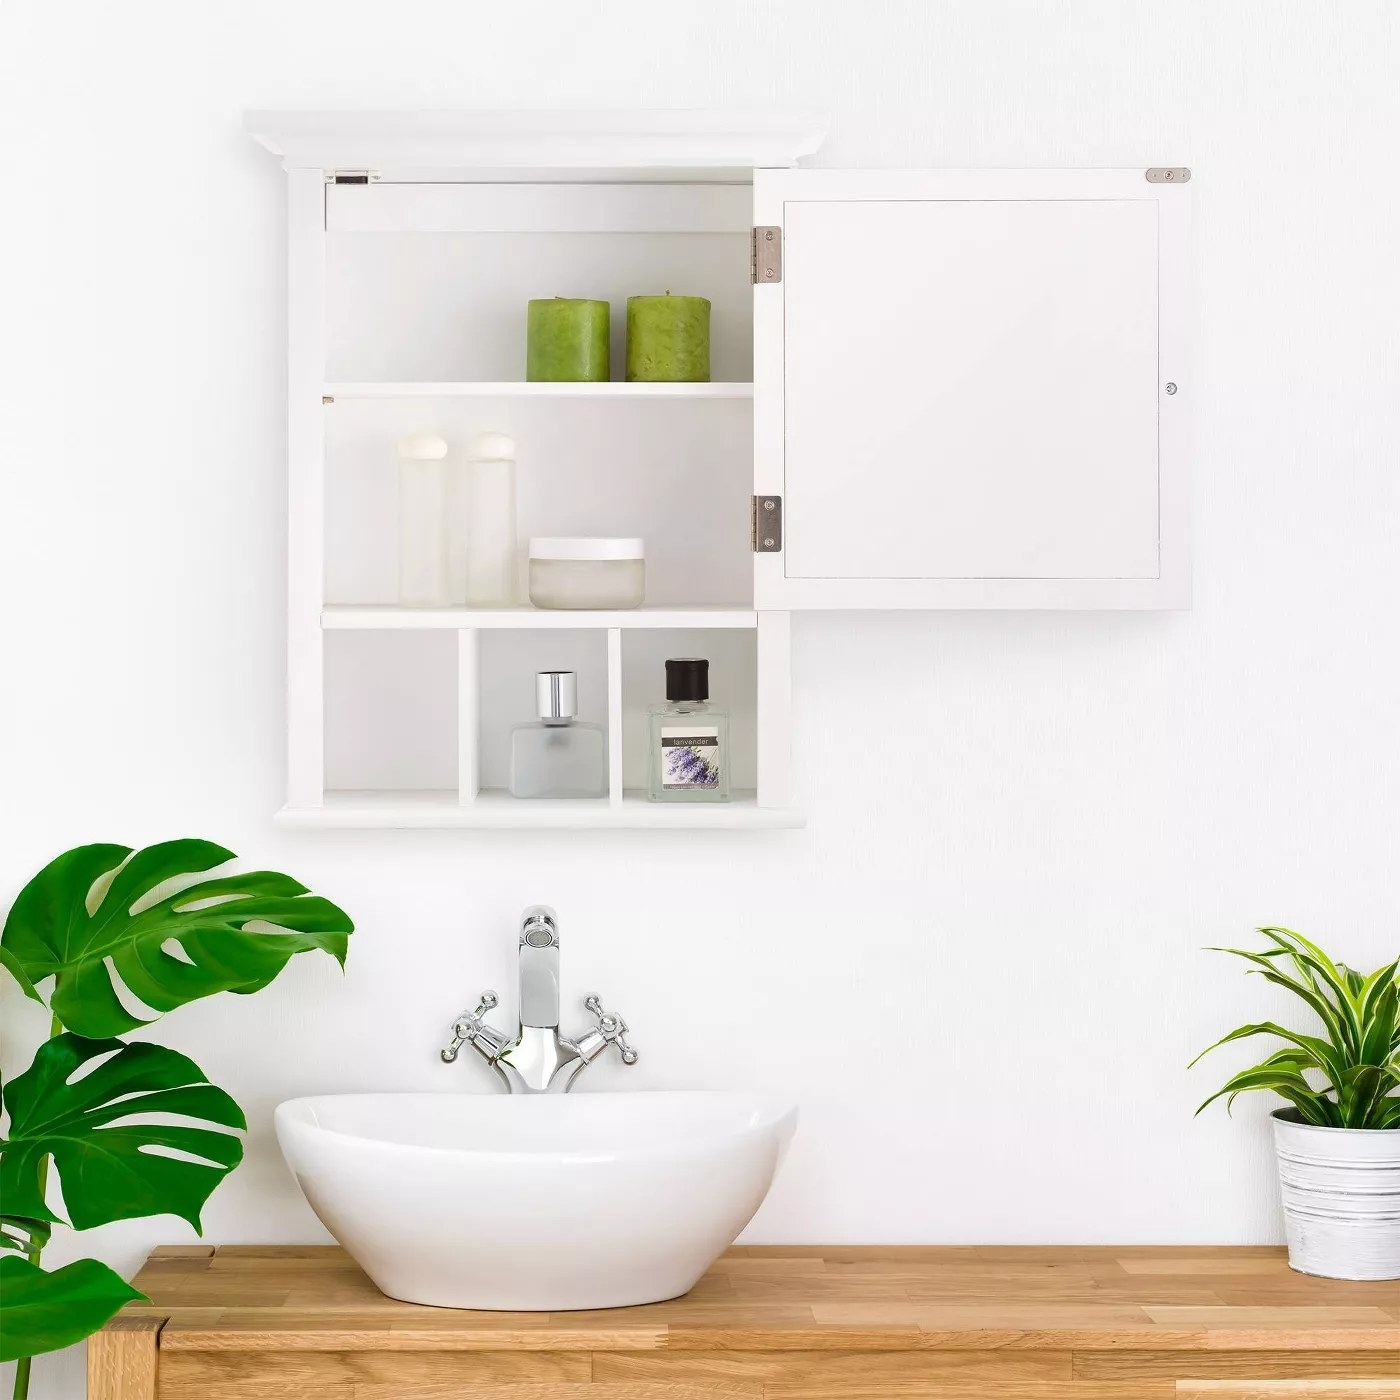 The open cabinet with internal shelves as well as shelves and a mirror on the outside